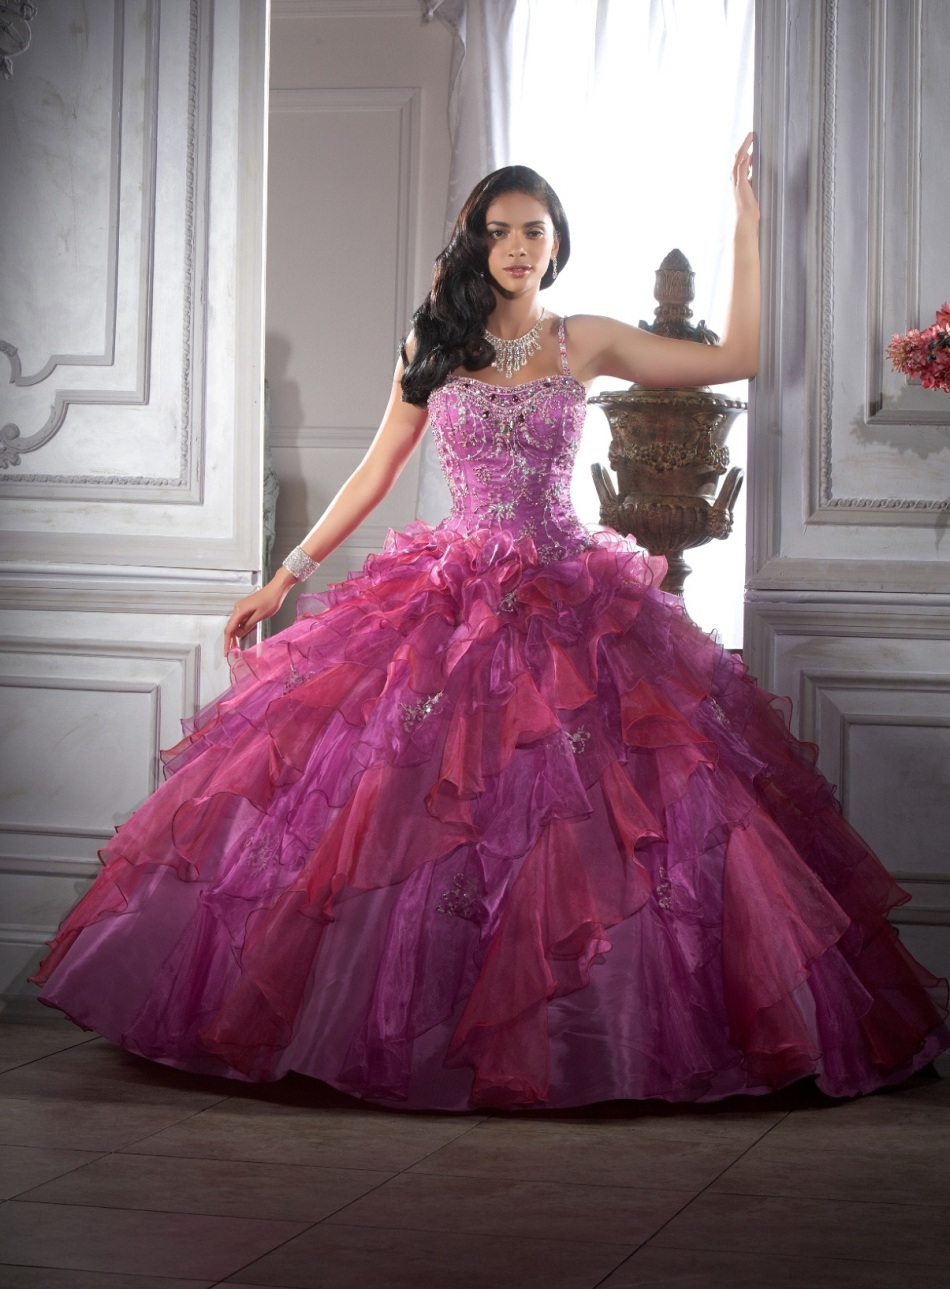 house of wu quinceanera dresses in houston tx | 15dressesinhoustontx